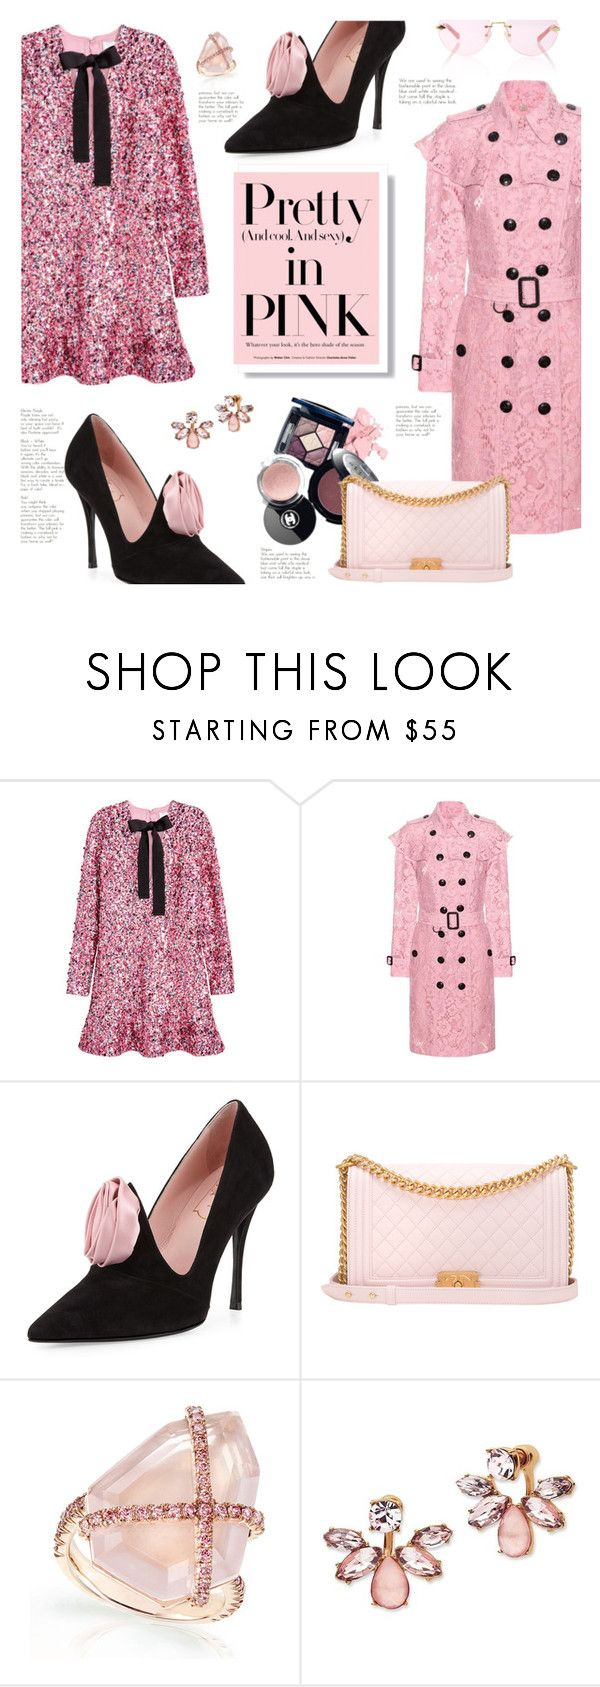 """""""Keep it Pretty"""" by lisalockhart ❤ liked on Polyvore featuring H&M, Burberry, Roger Vivier, Chanel, Marchesa, Karen Walker, Pink and monochromepink"""